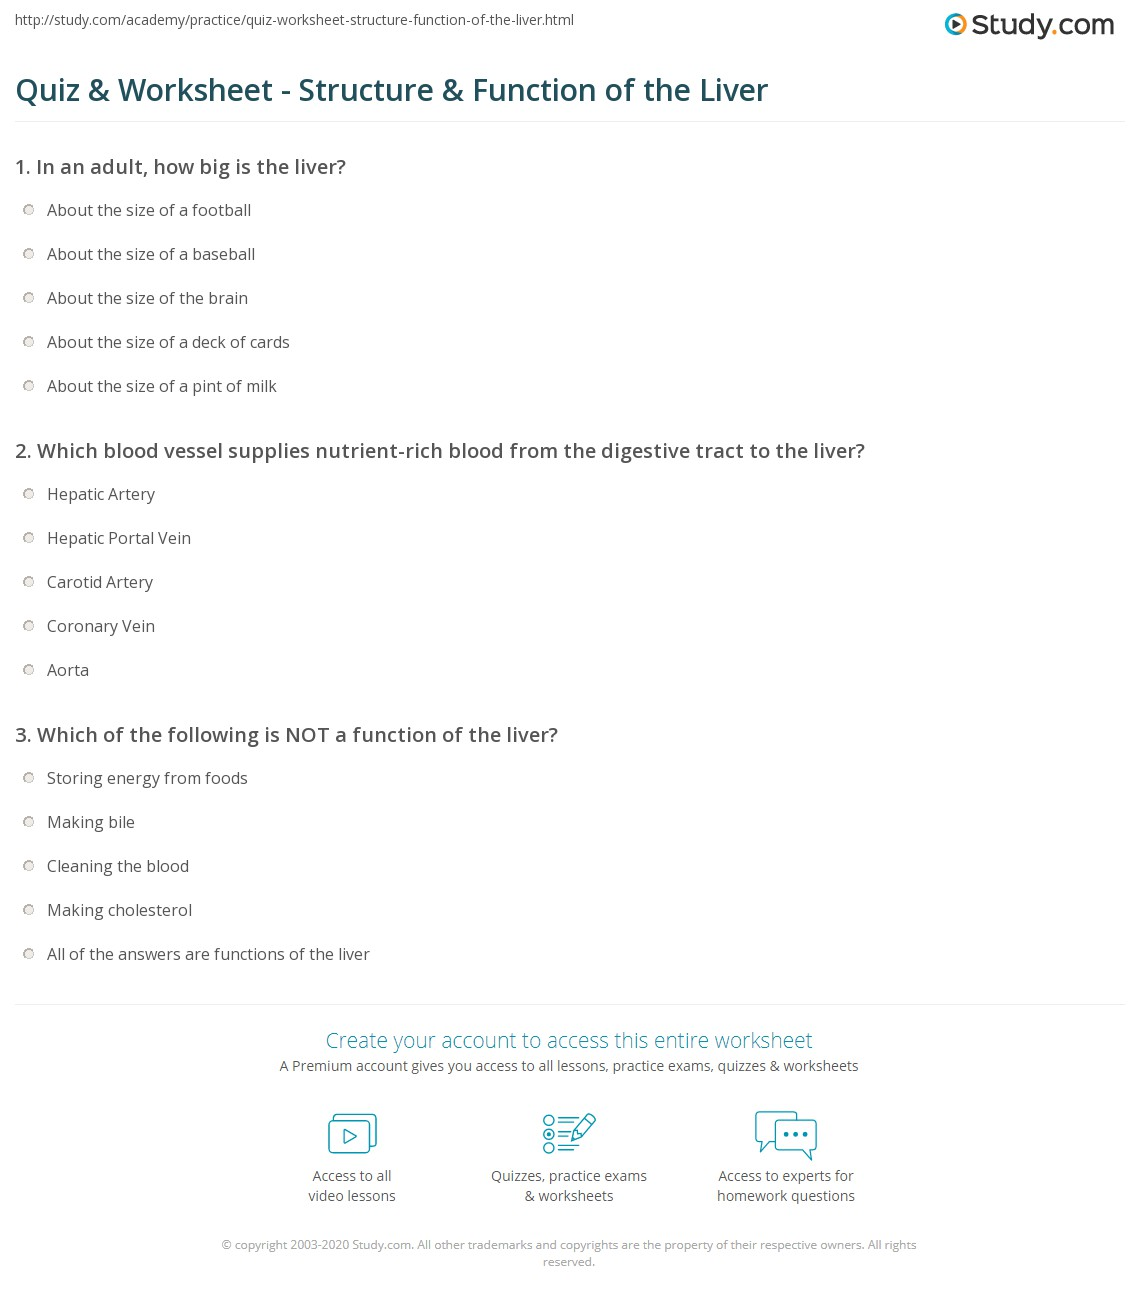 Quiz Worksheet Structure Function Of The Liver Study